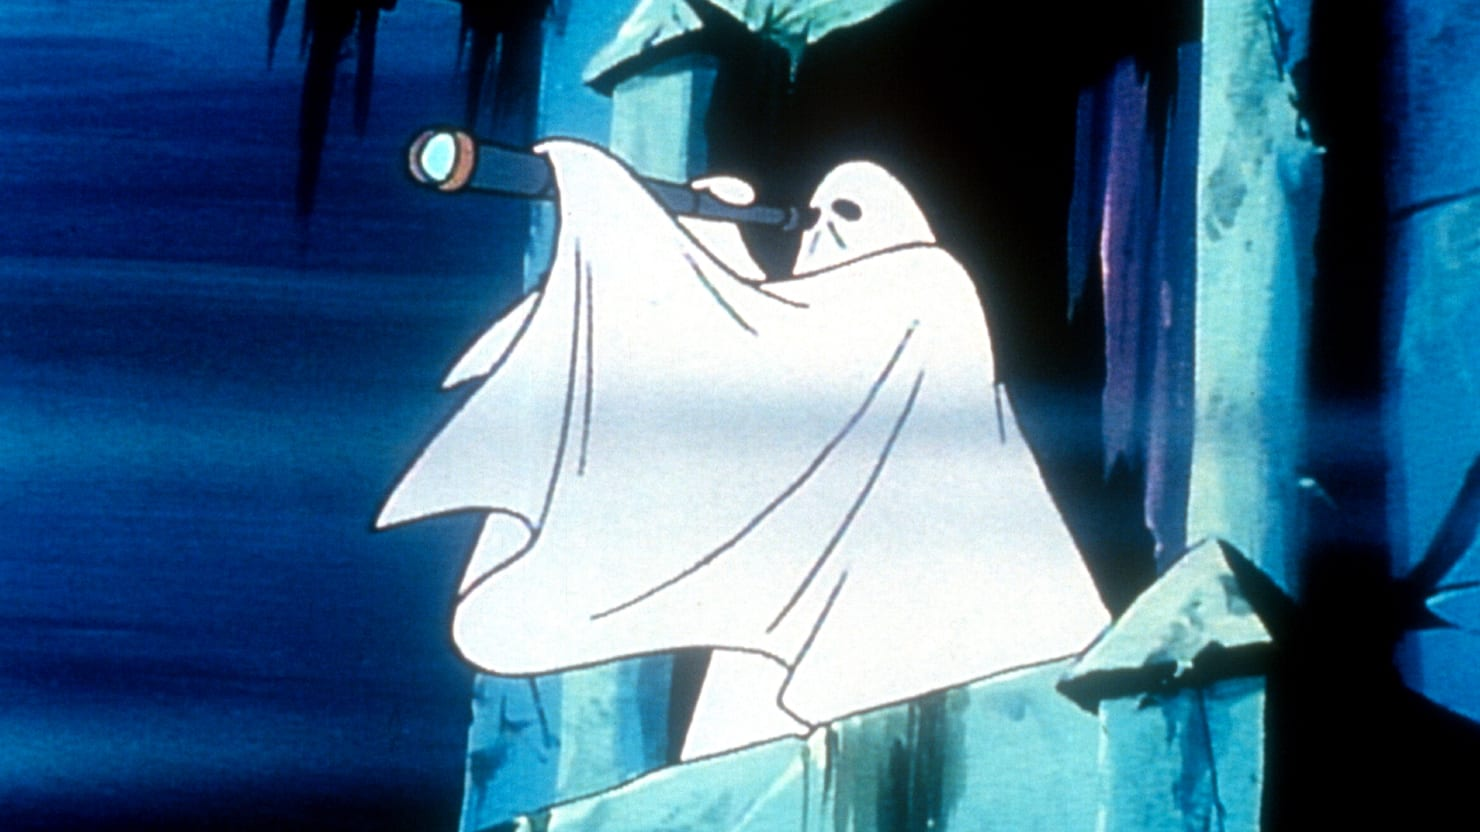 who invented the bedsheet ghost